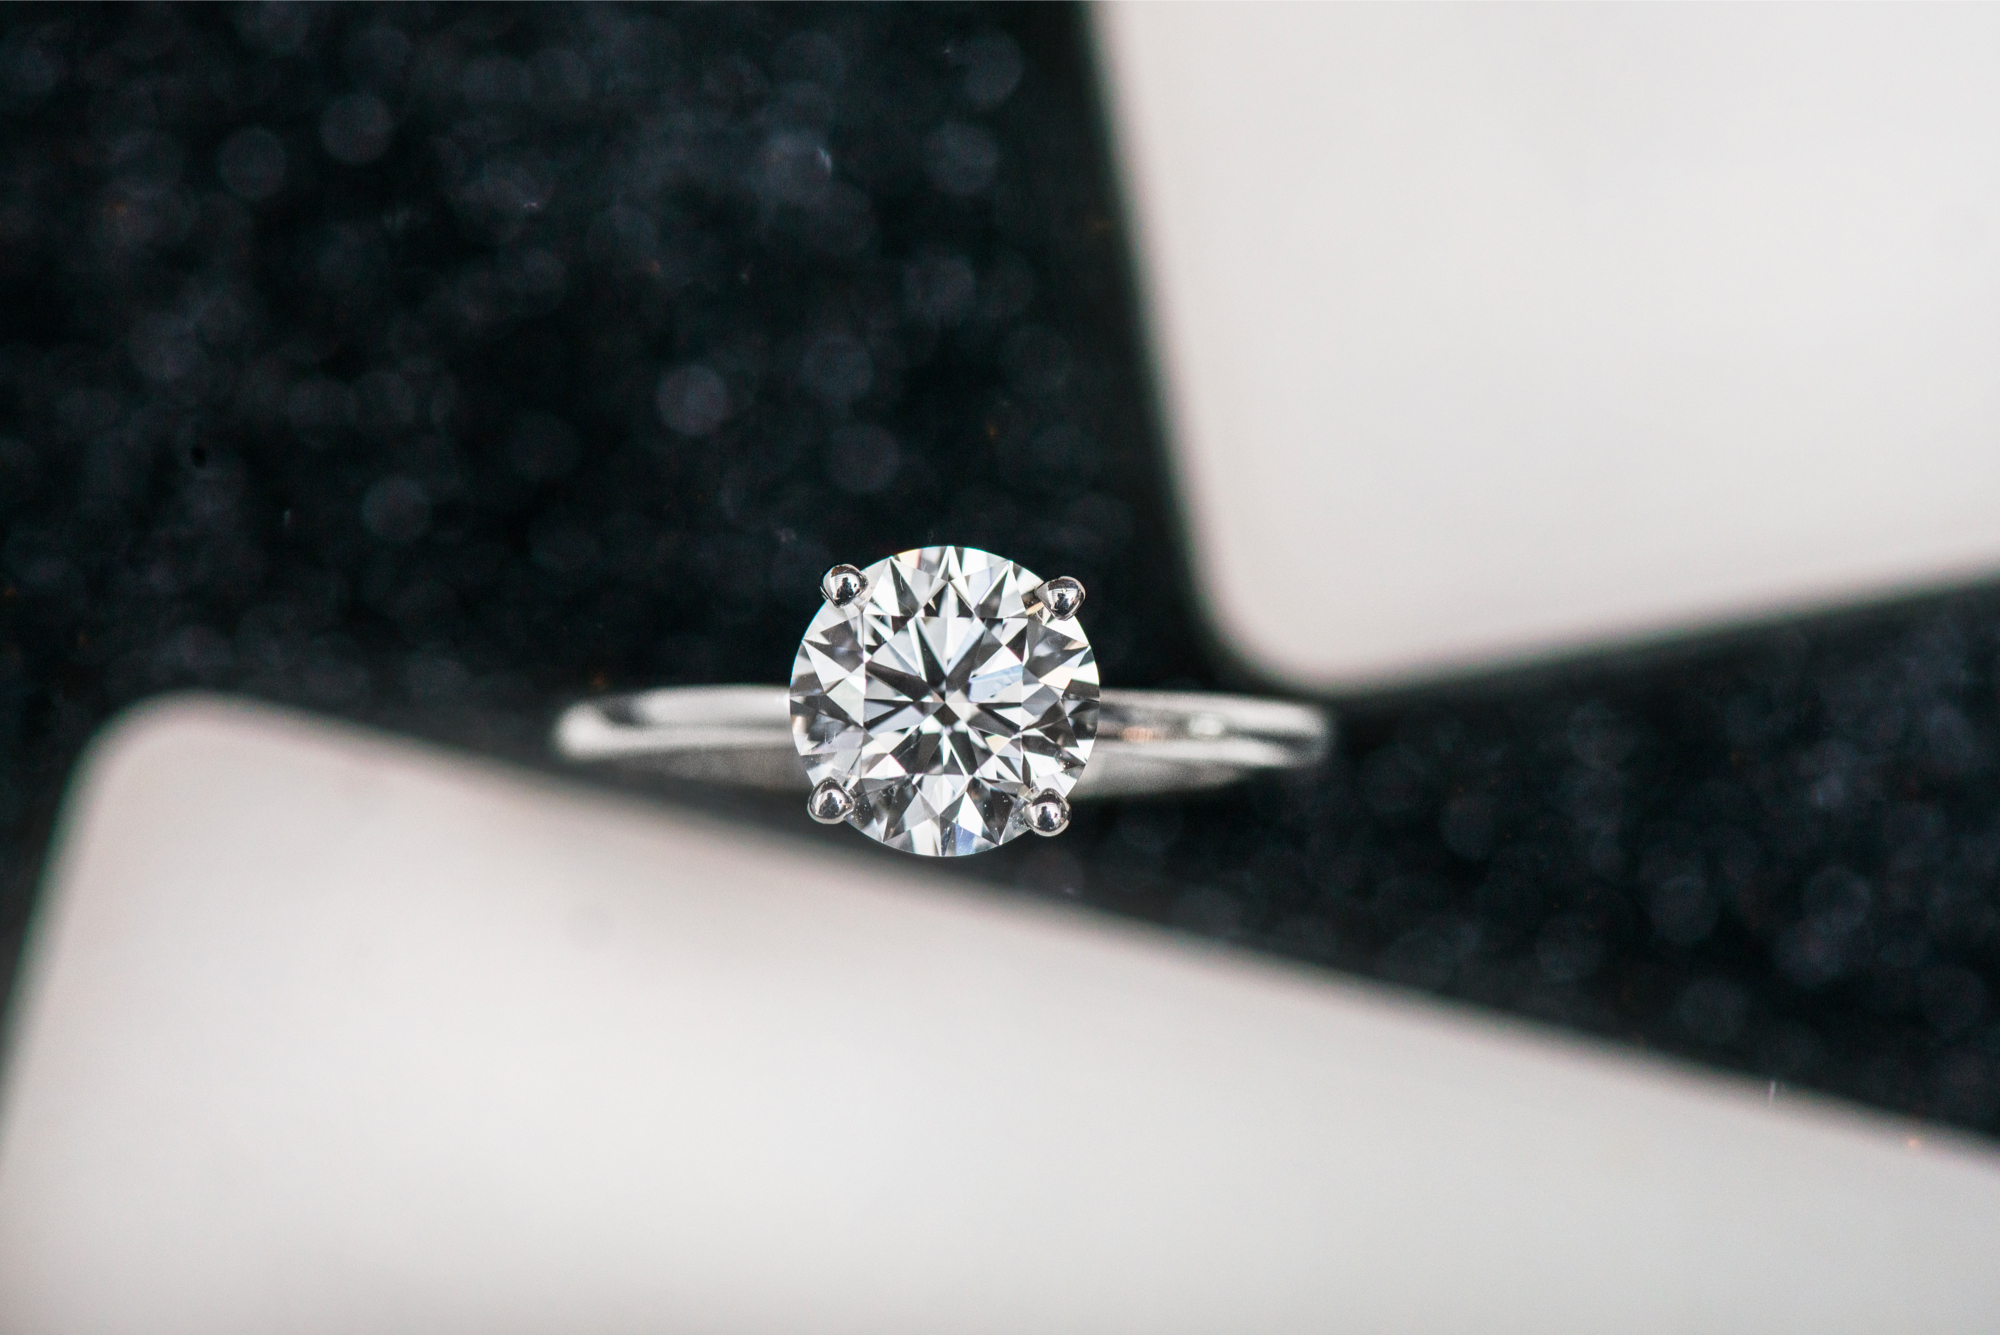 Image 4 of How to Buy a Diamond: 4 C's Diamond Buying Guide